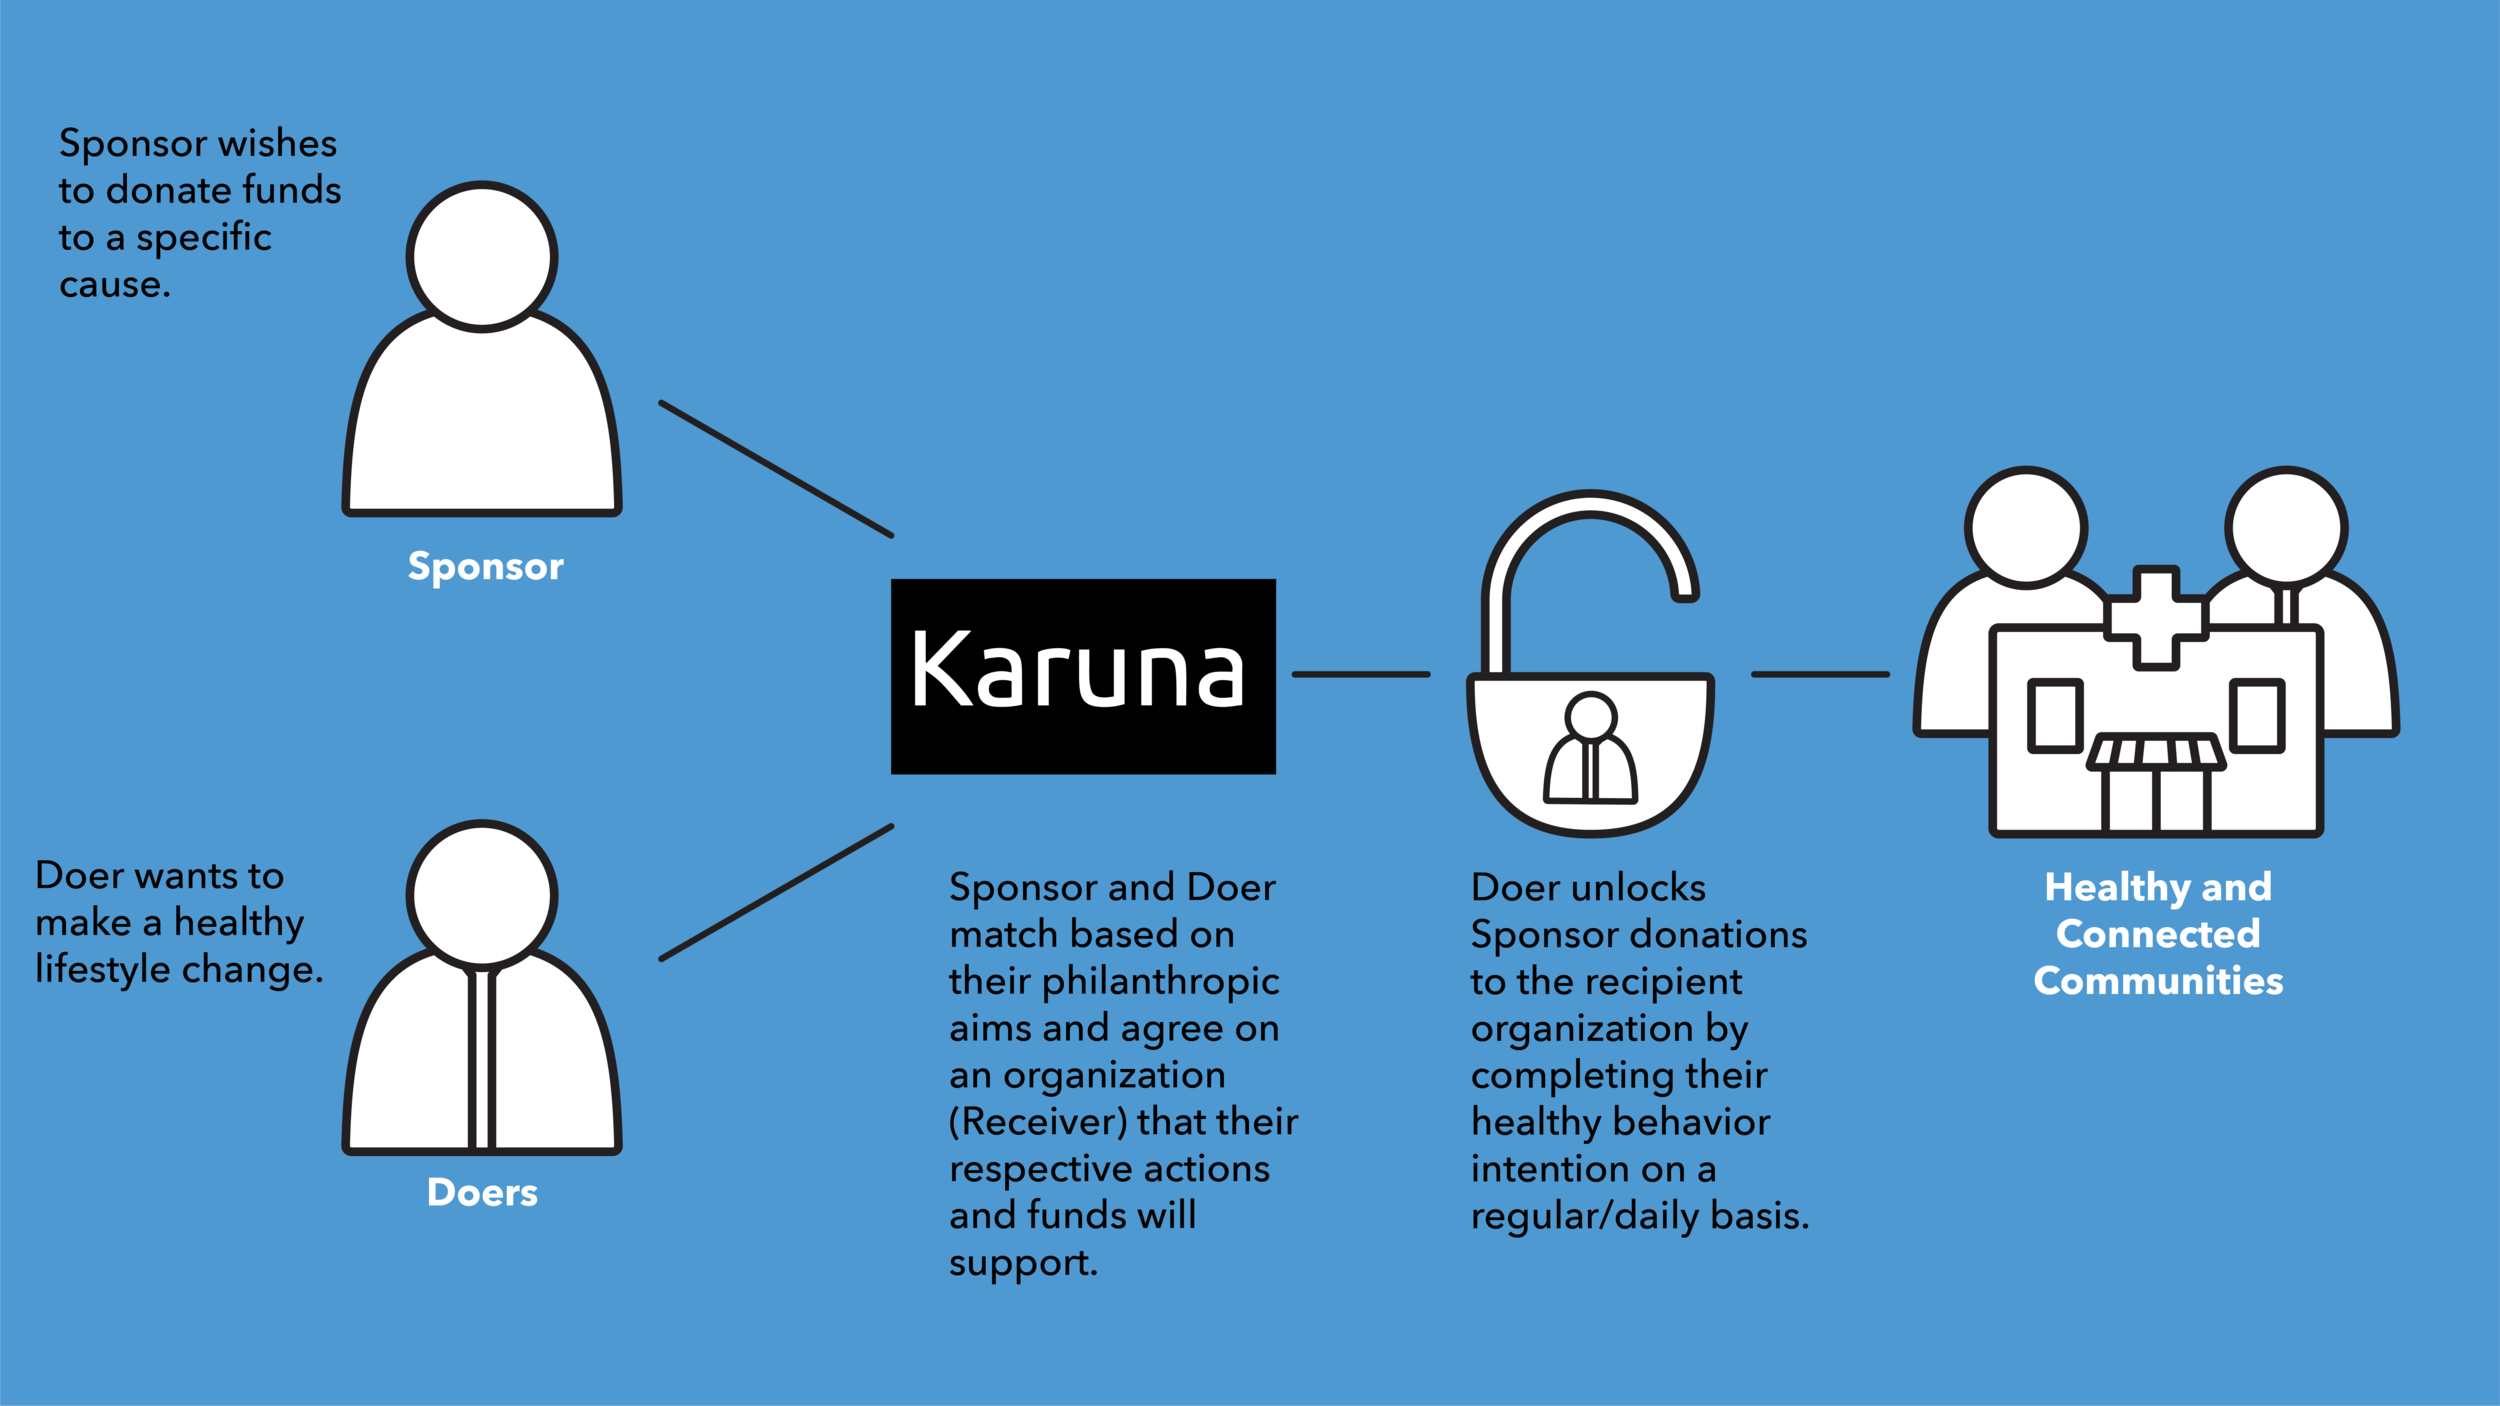 Karuna_Infographic_Good1_Karuna Graphic.png